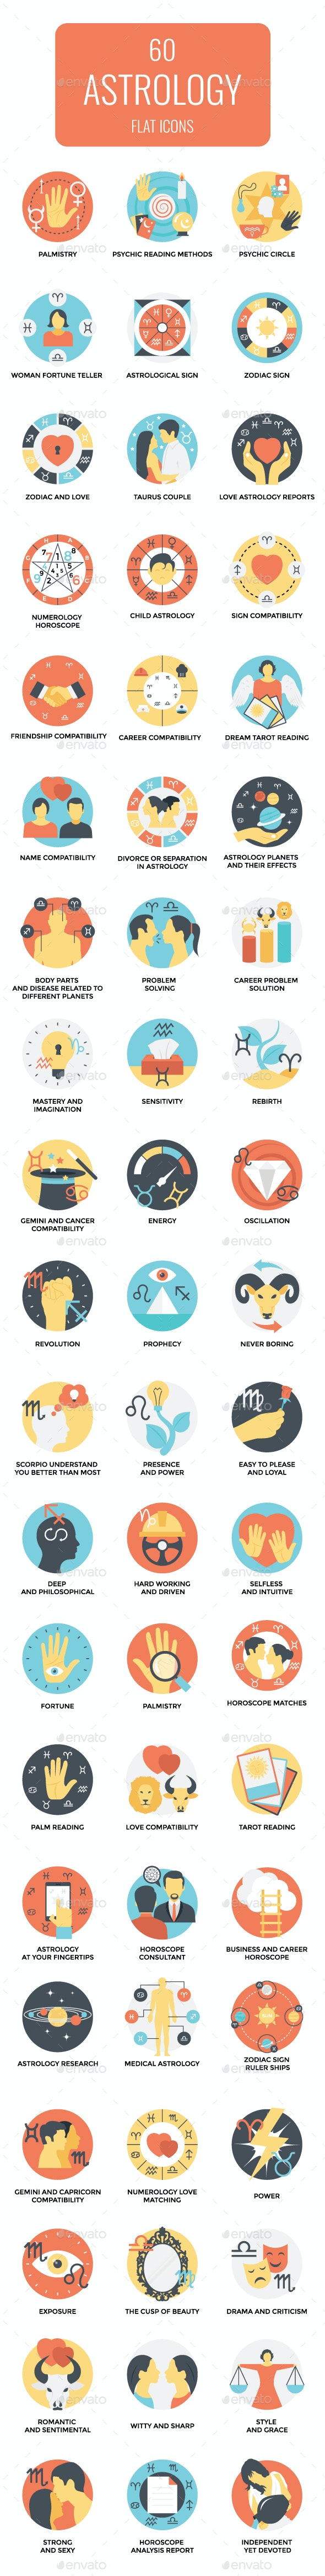 60 Flat Astrology Icons - Icons